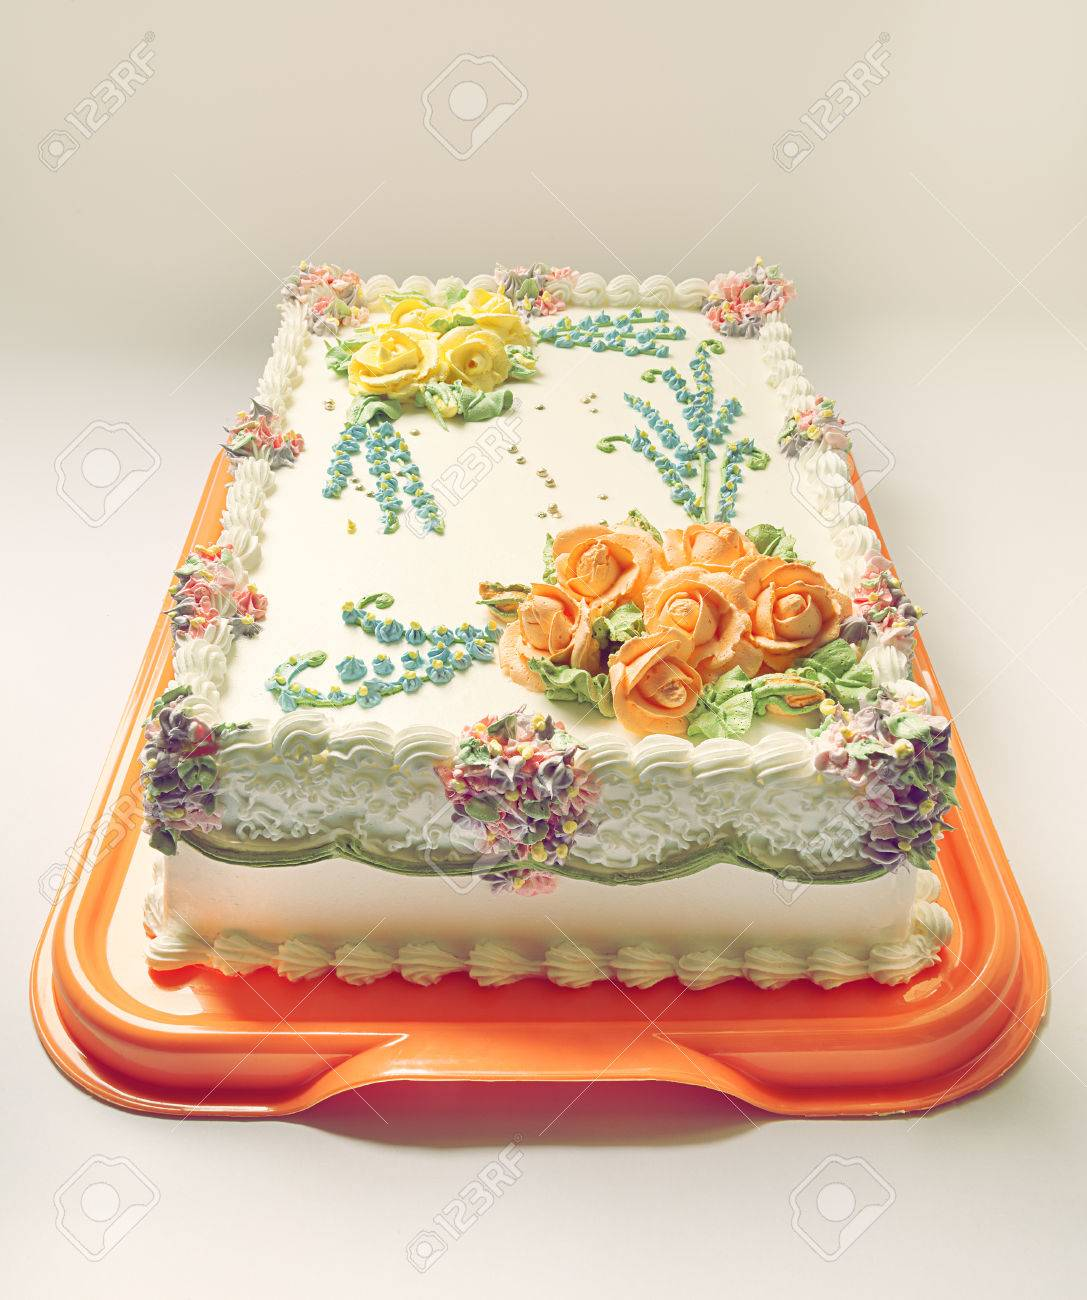 Fine Classical Birthday Cake Design With A Lot Of Flowers Of Cream Personalised Birthday Cards Veneteletsinfo